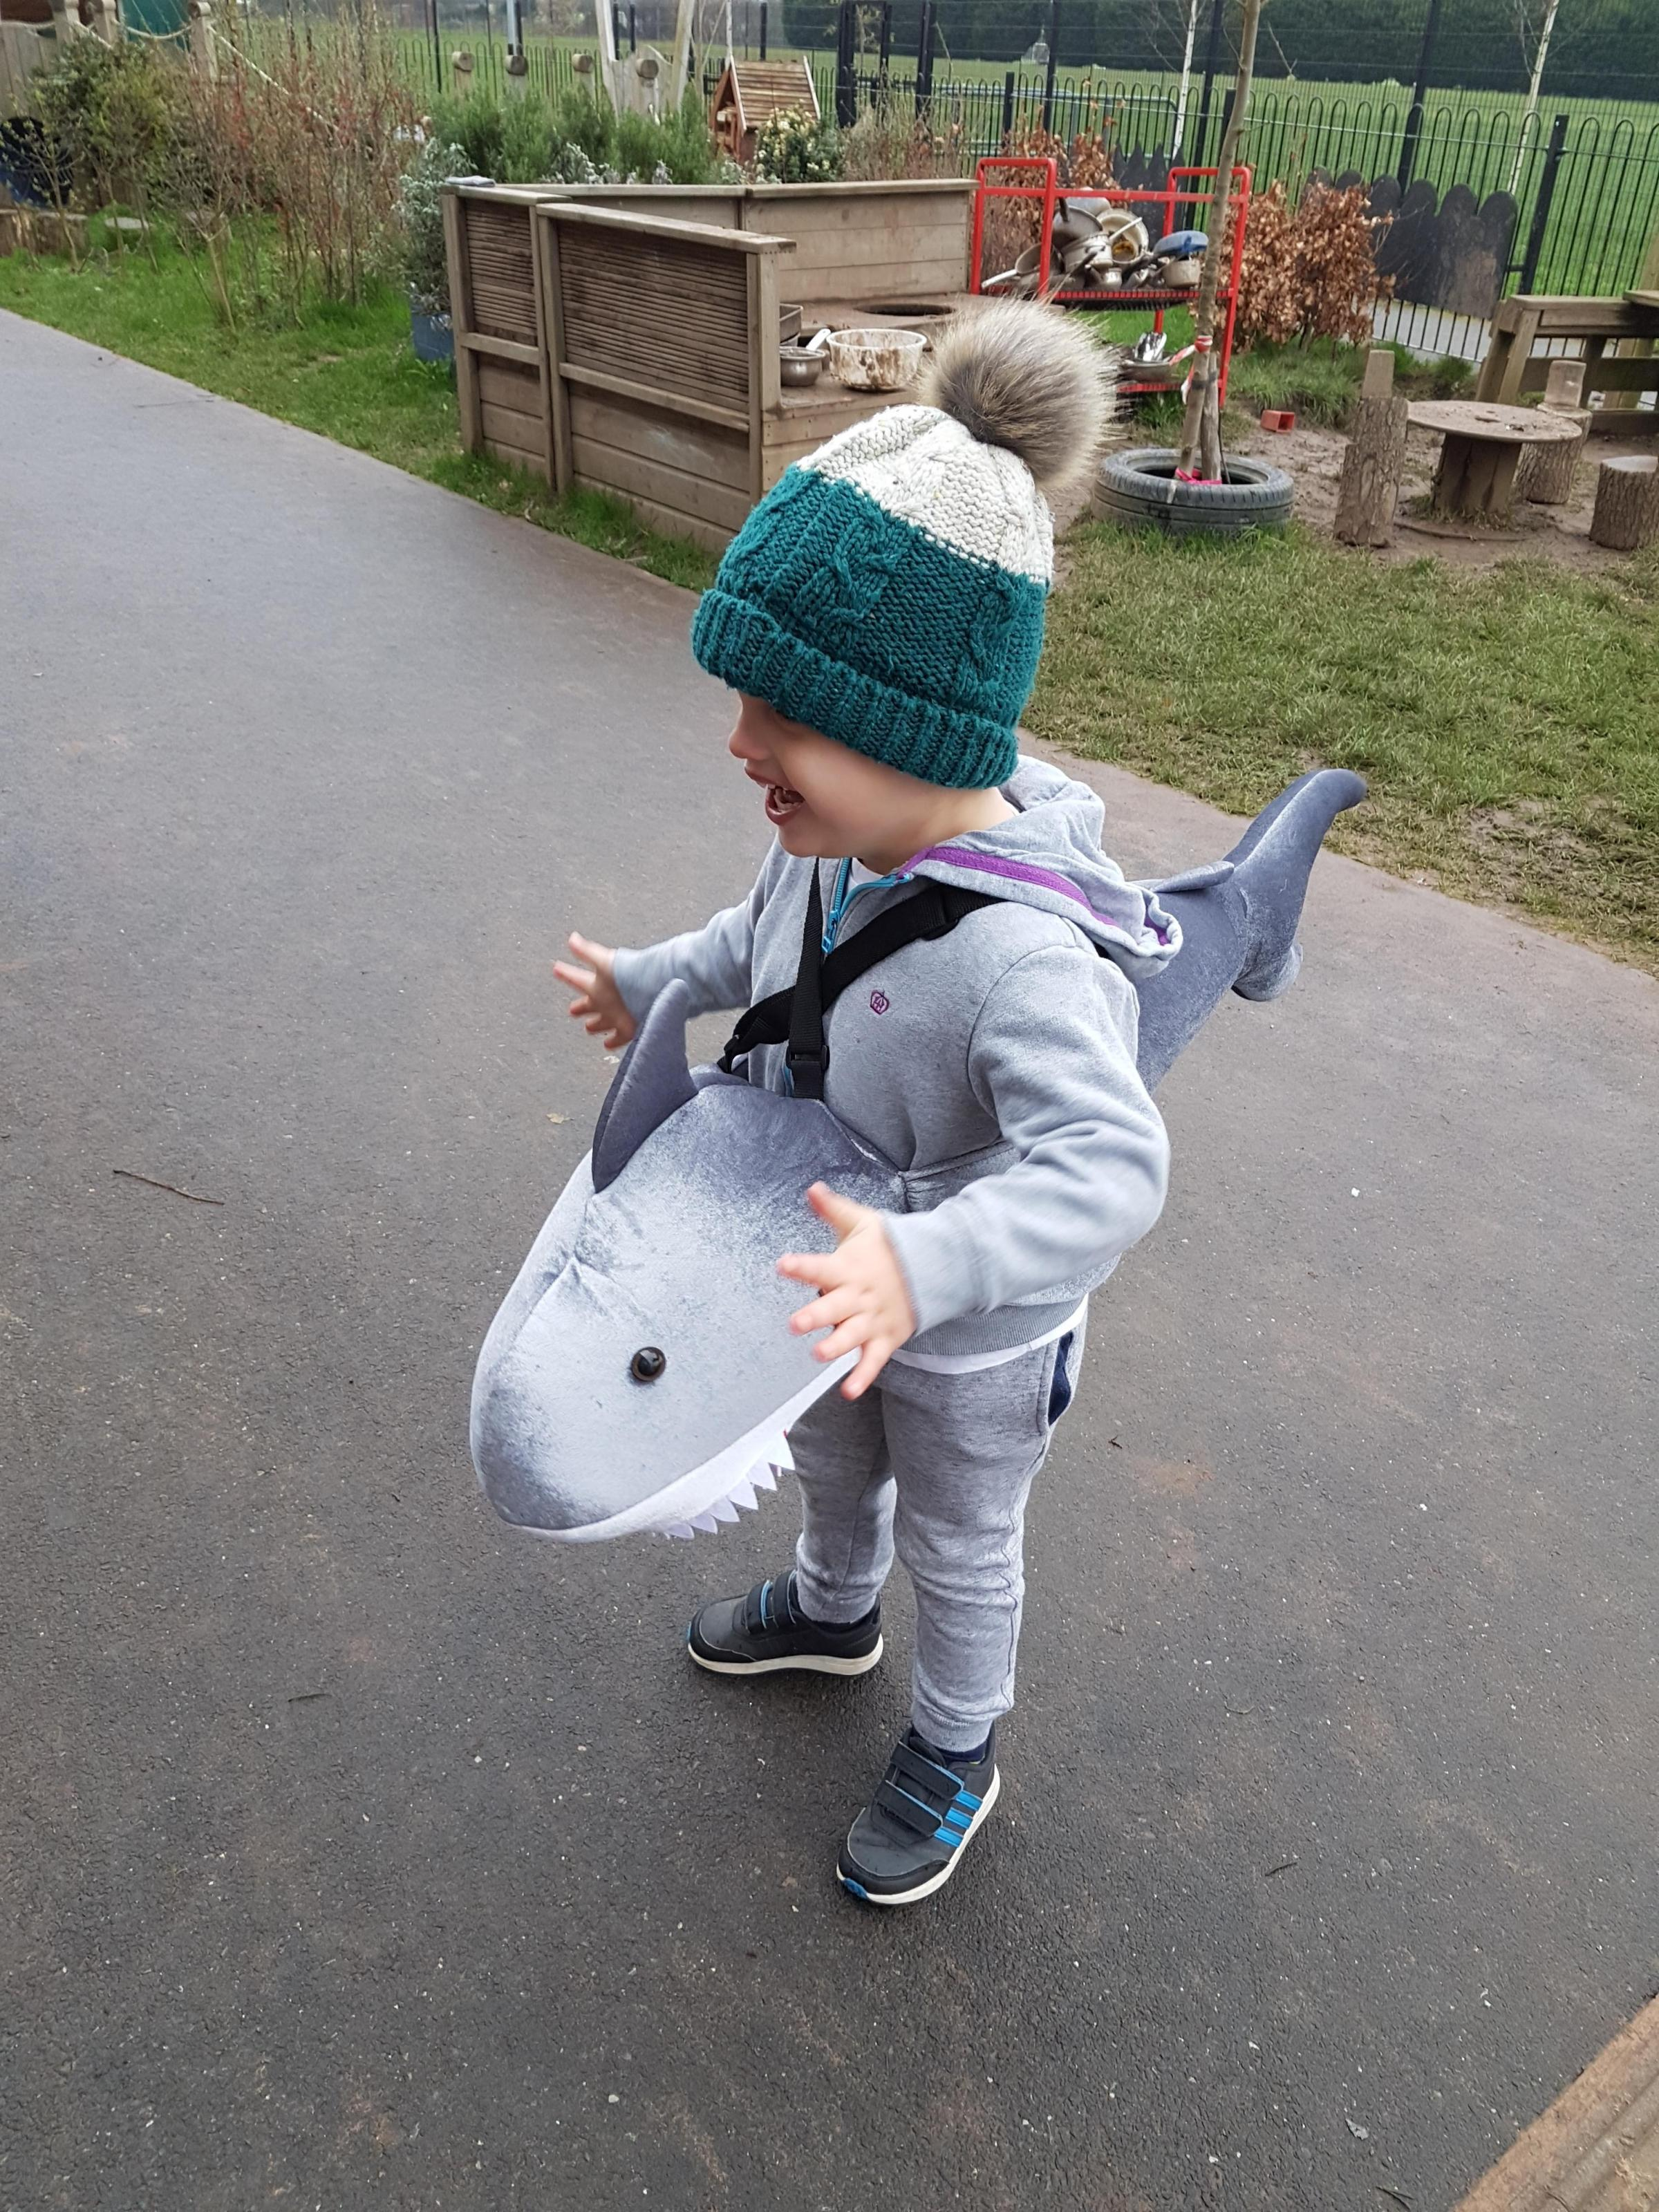 Droitwich Advertiser: Jacob age 4 dressed as shark in the park